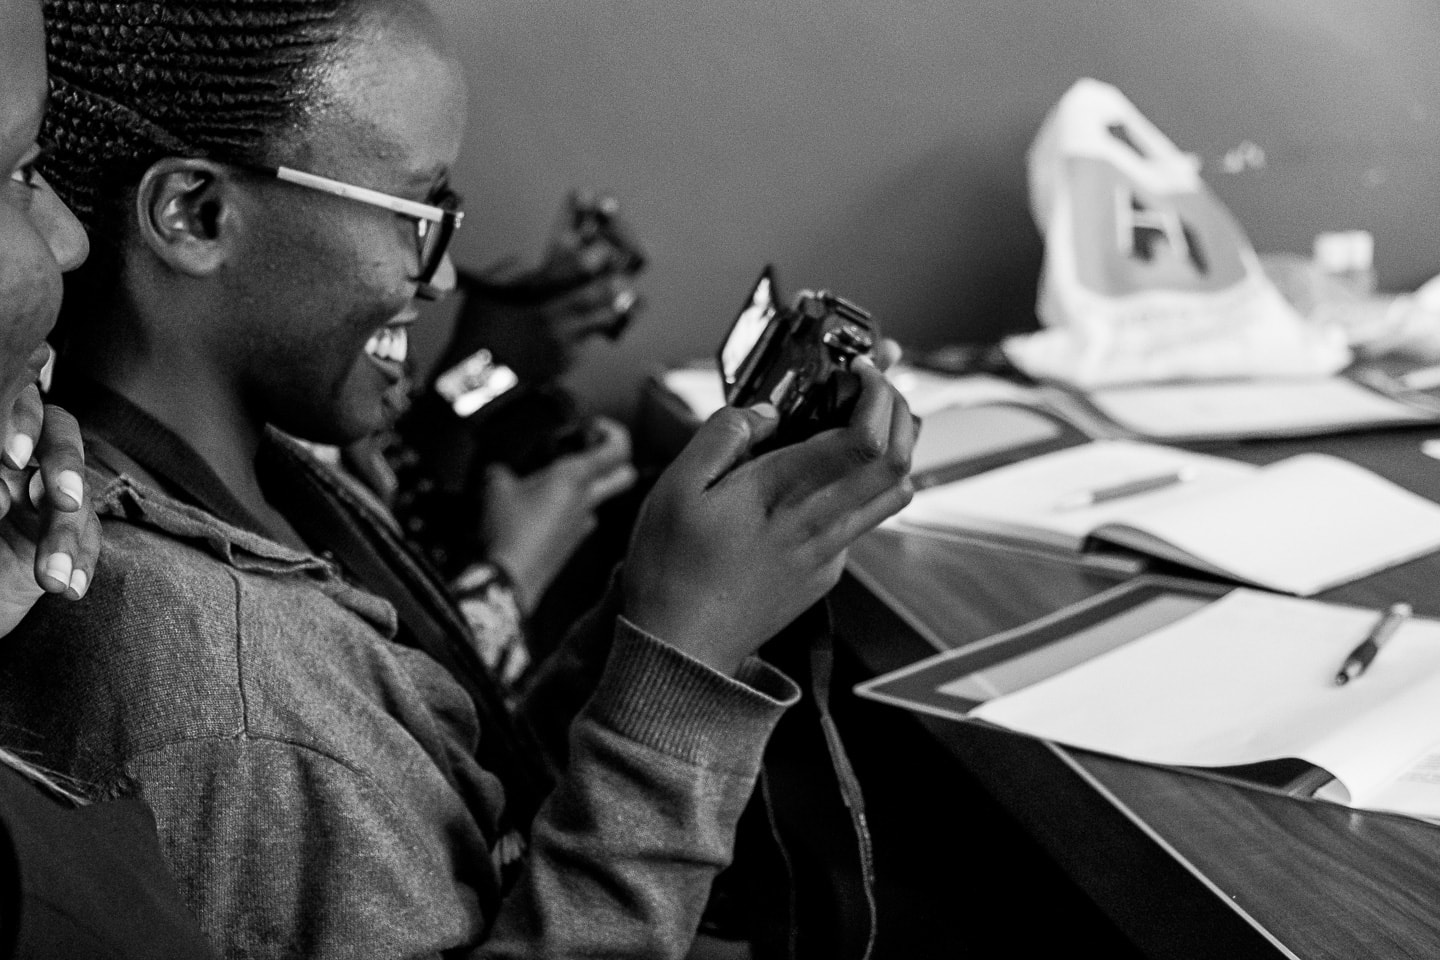 Prisca-studying-th-camera-functions-at-the-Cameras-For-Girls-workshop